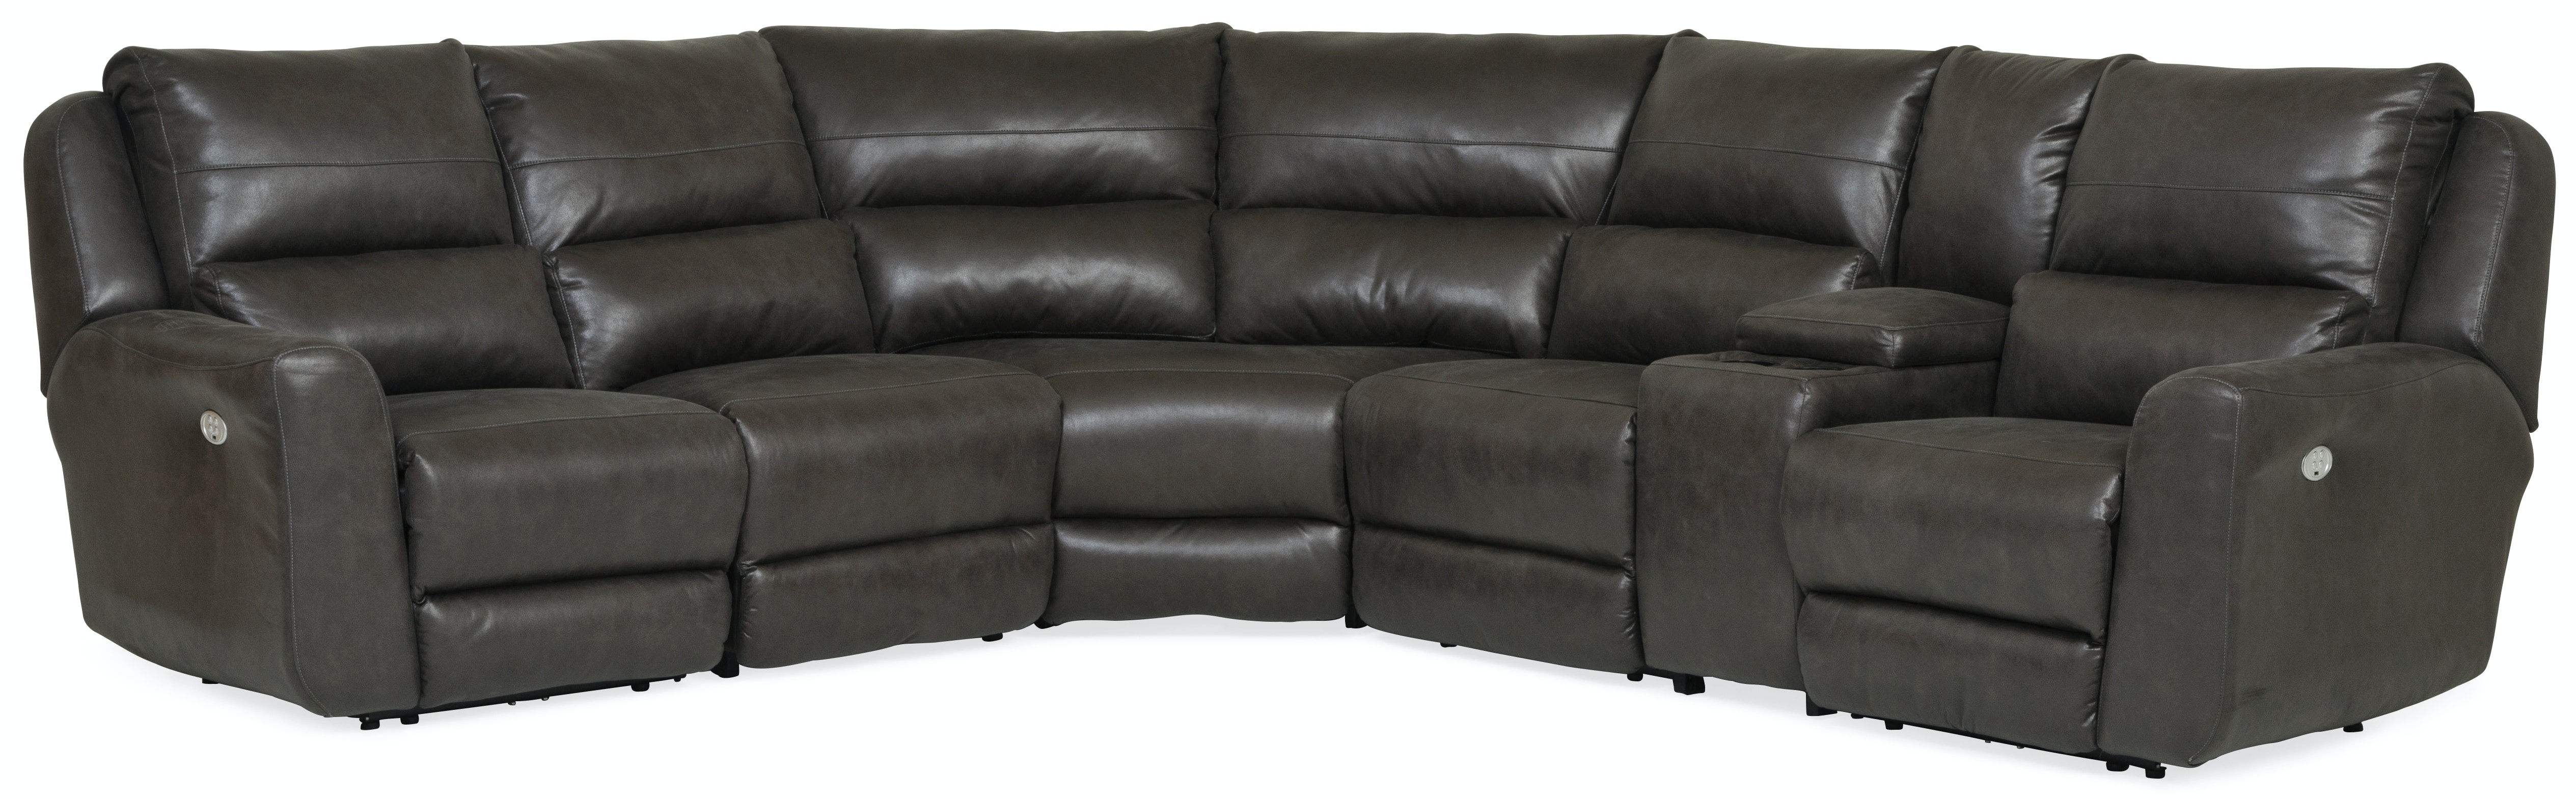 Producer 6 Piece Power Reclining Sectional With Power Headrests GP:M154 Nice Ideas